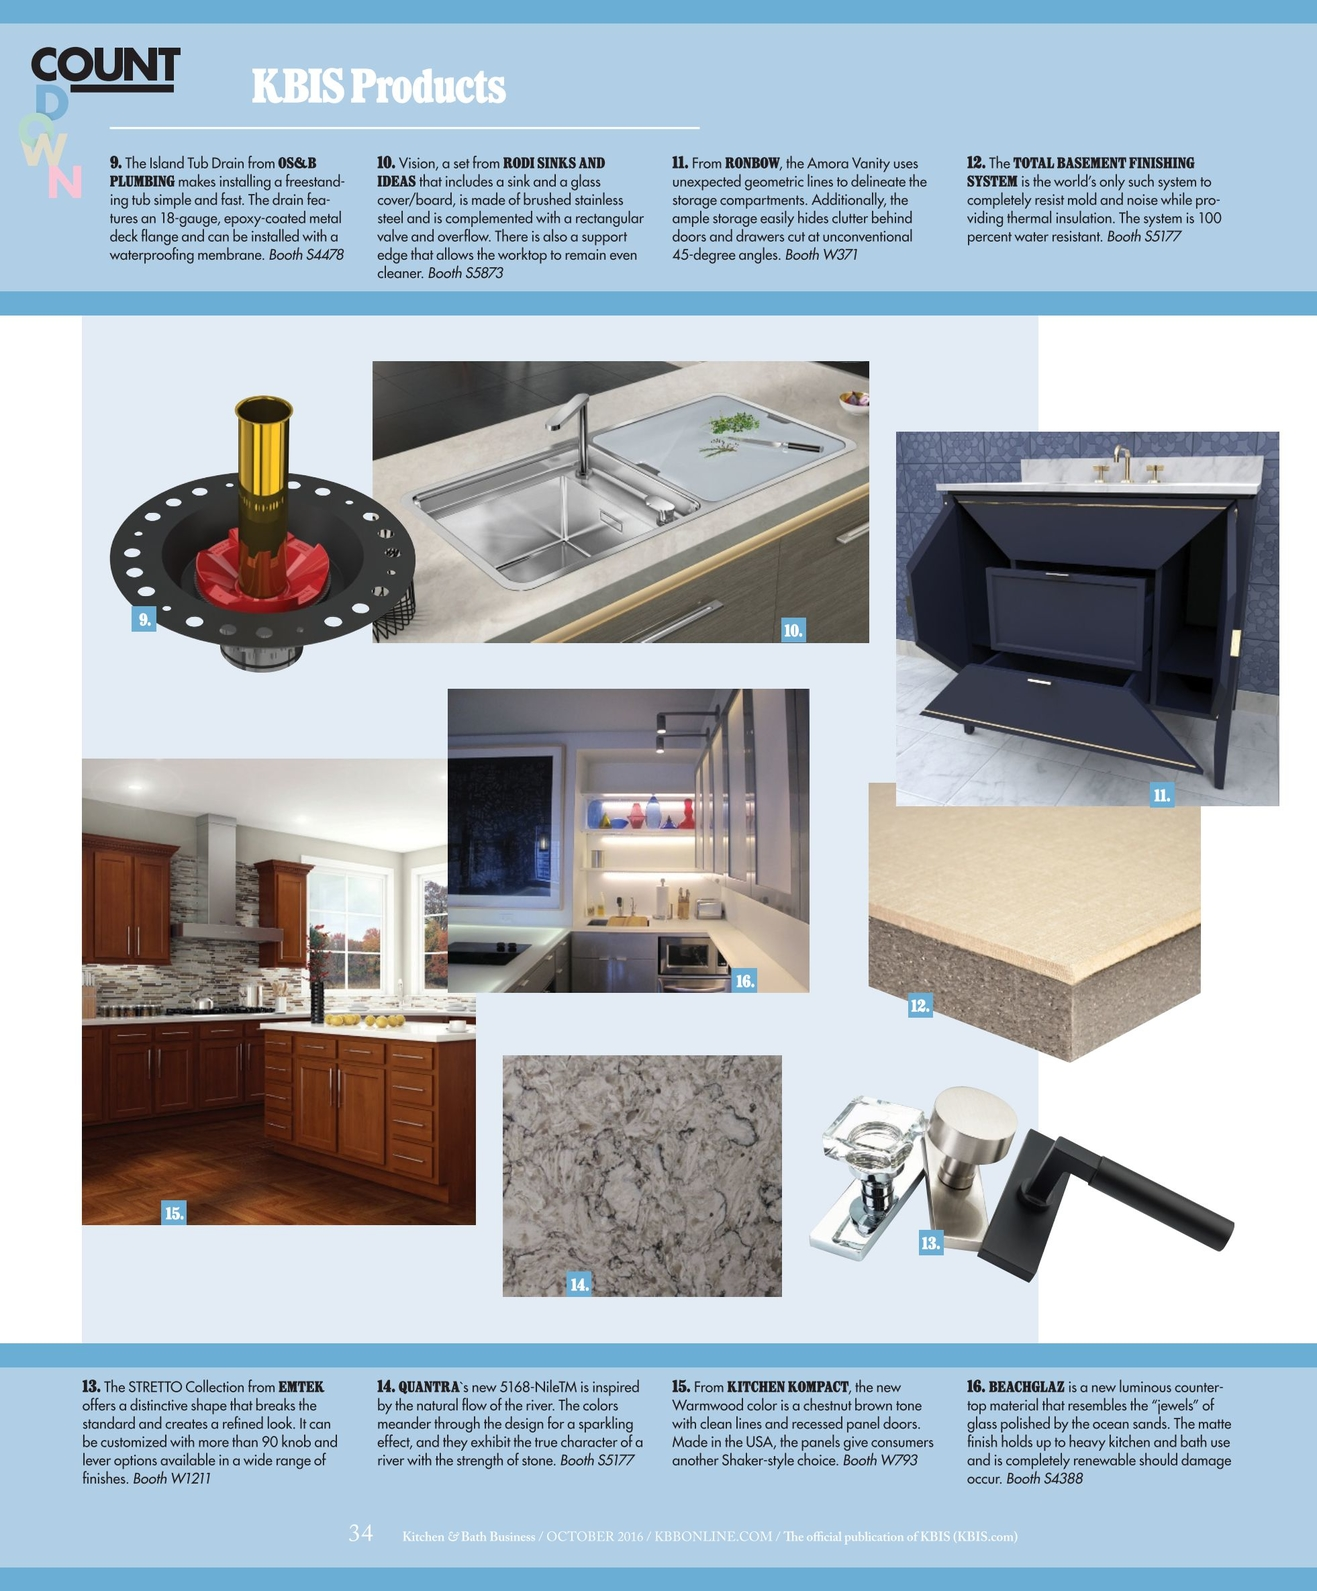 Kitchen & Bath Business - October 2016 [34 - 35]